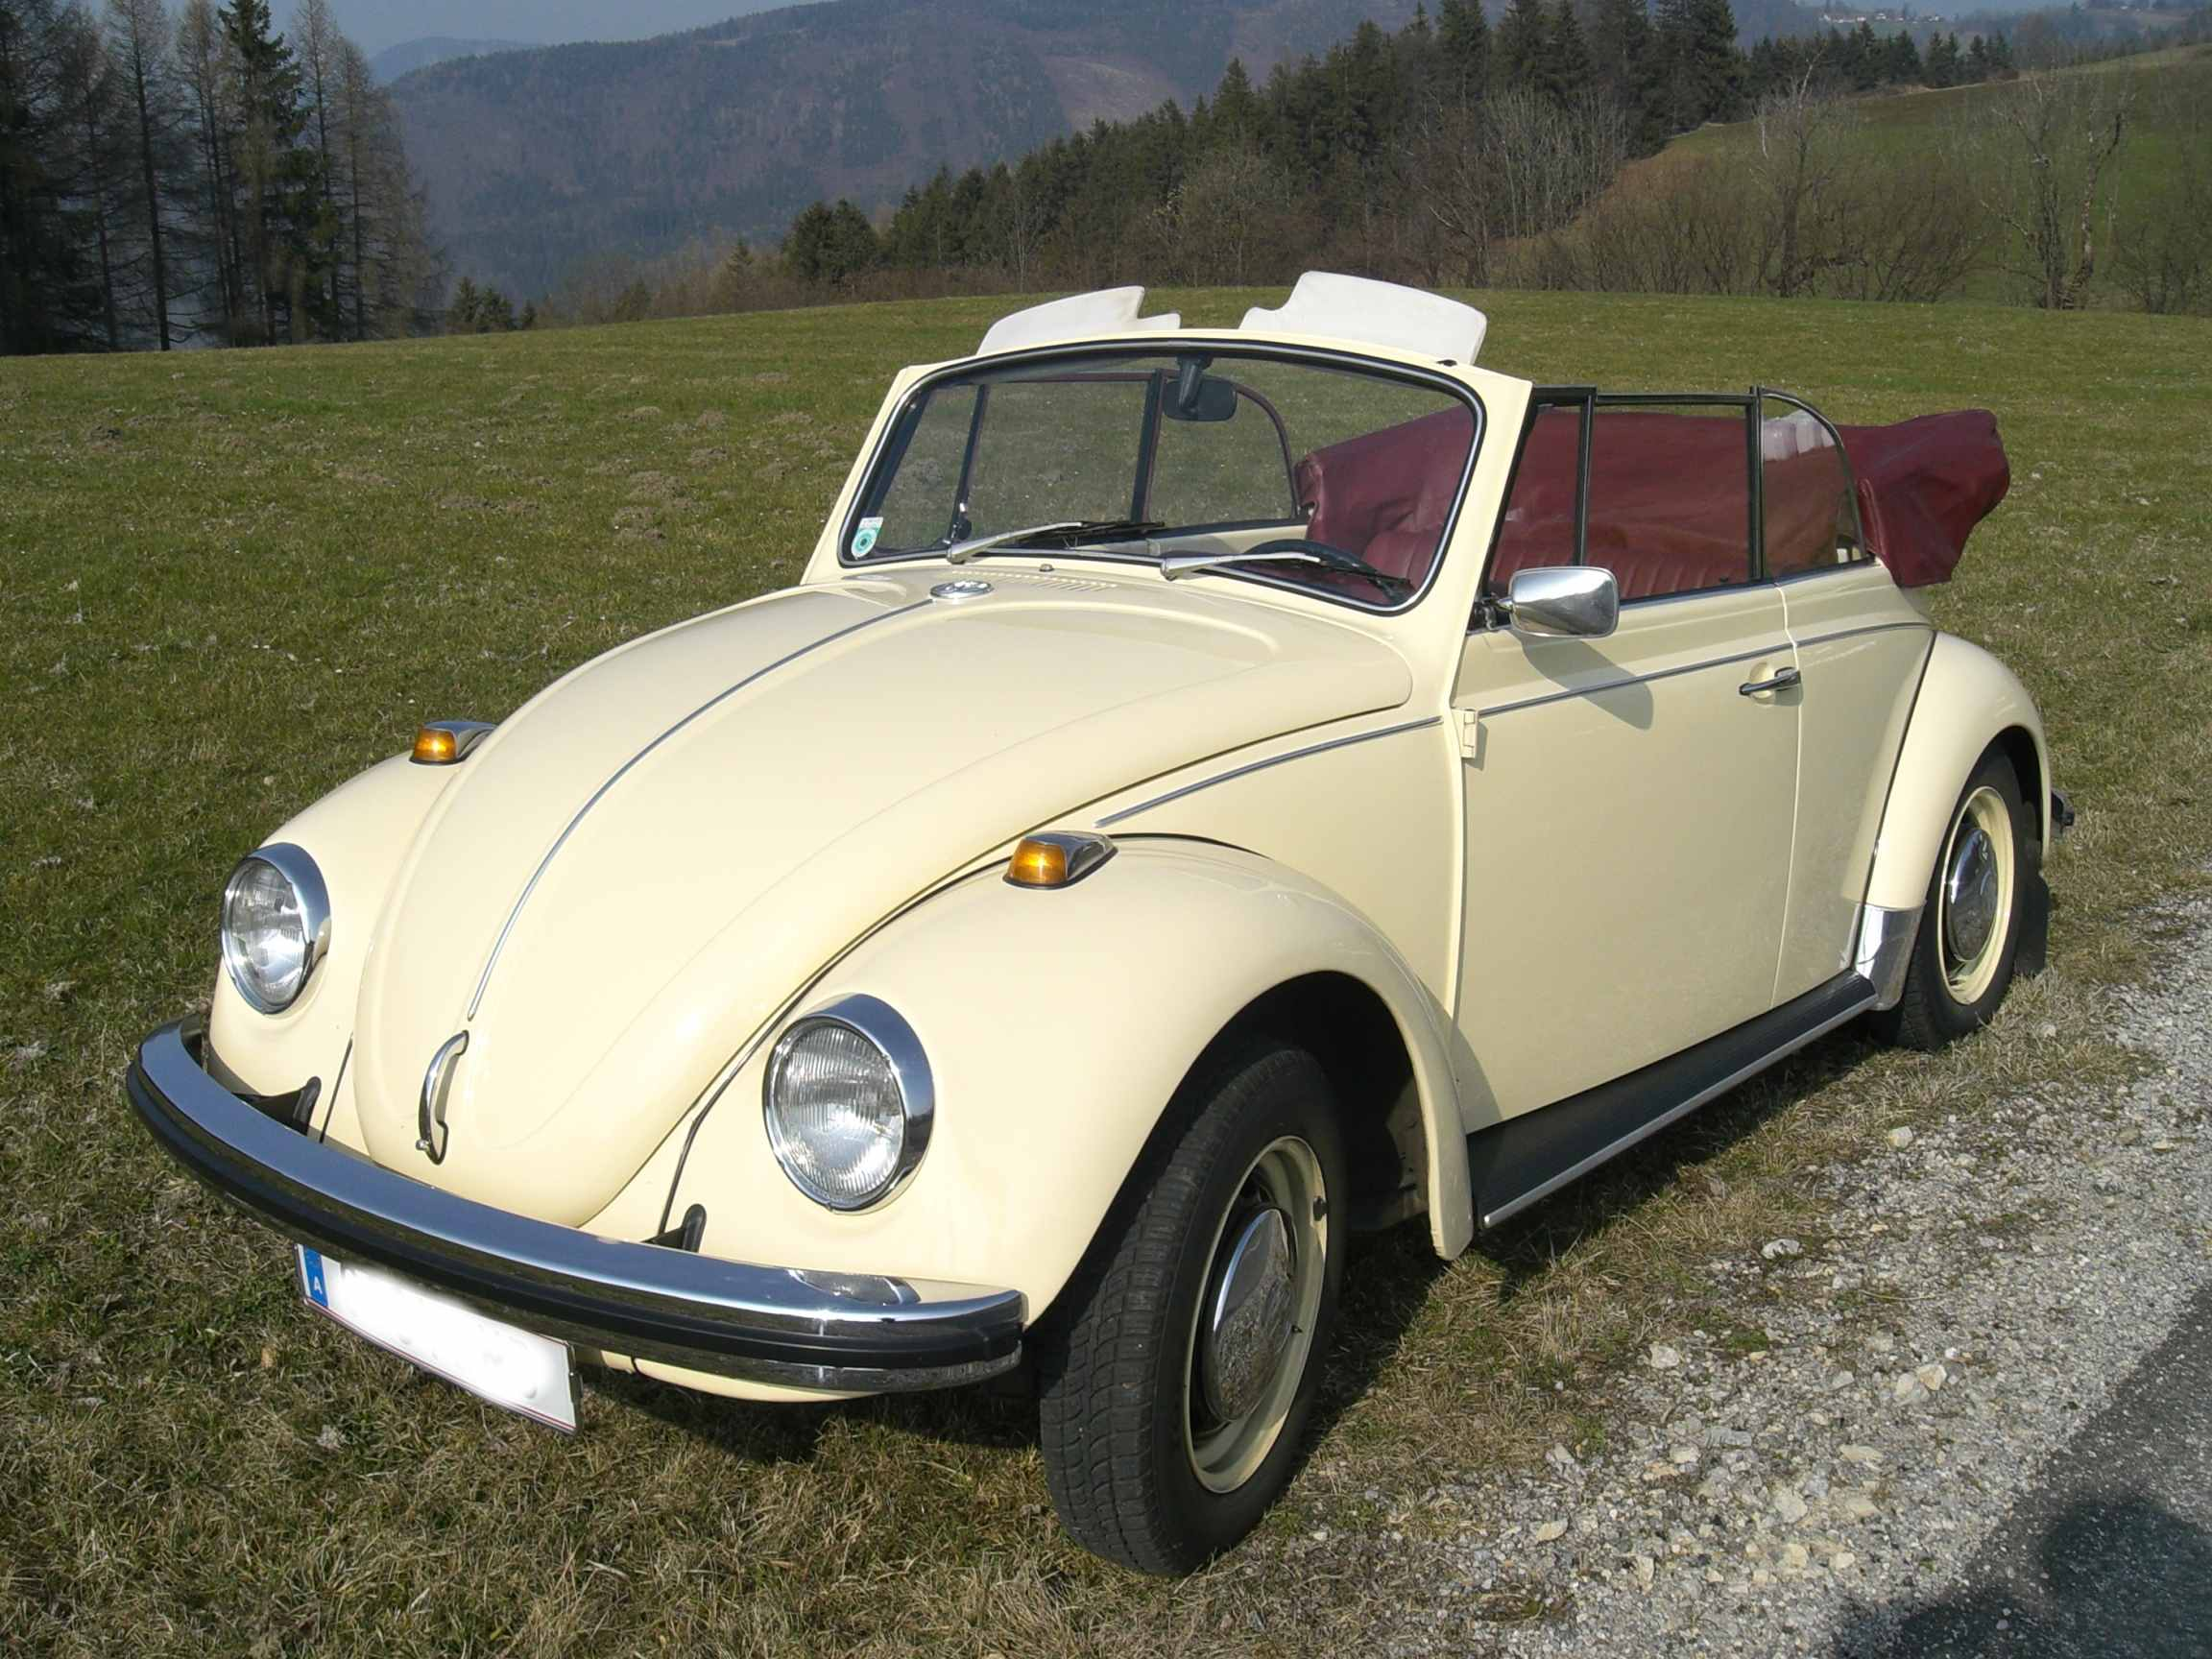 11075_vw_käfer_1500_cabrio_auto_stof_mg11075.jpg